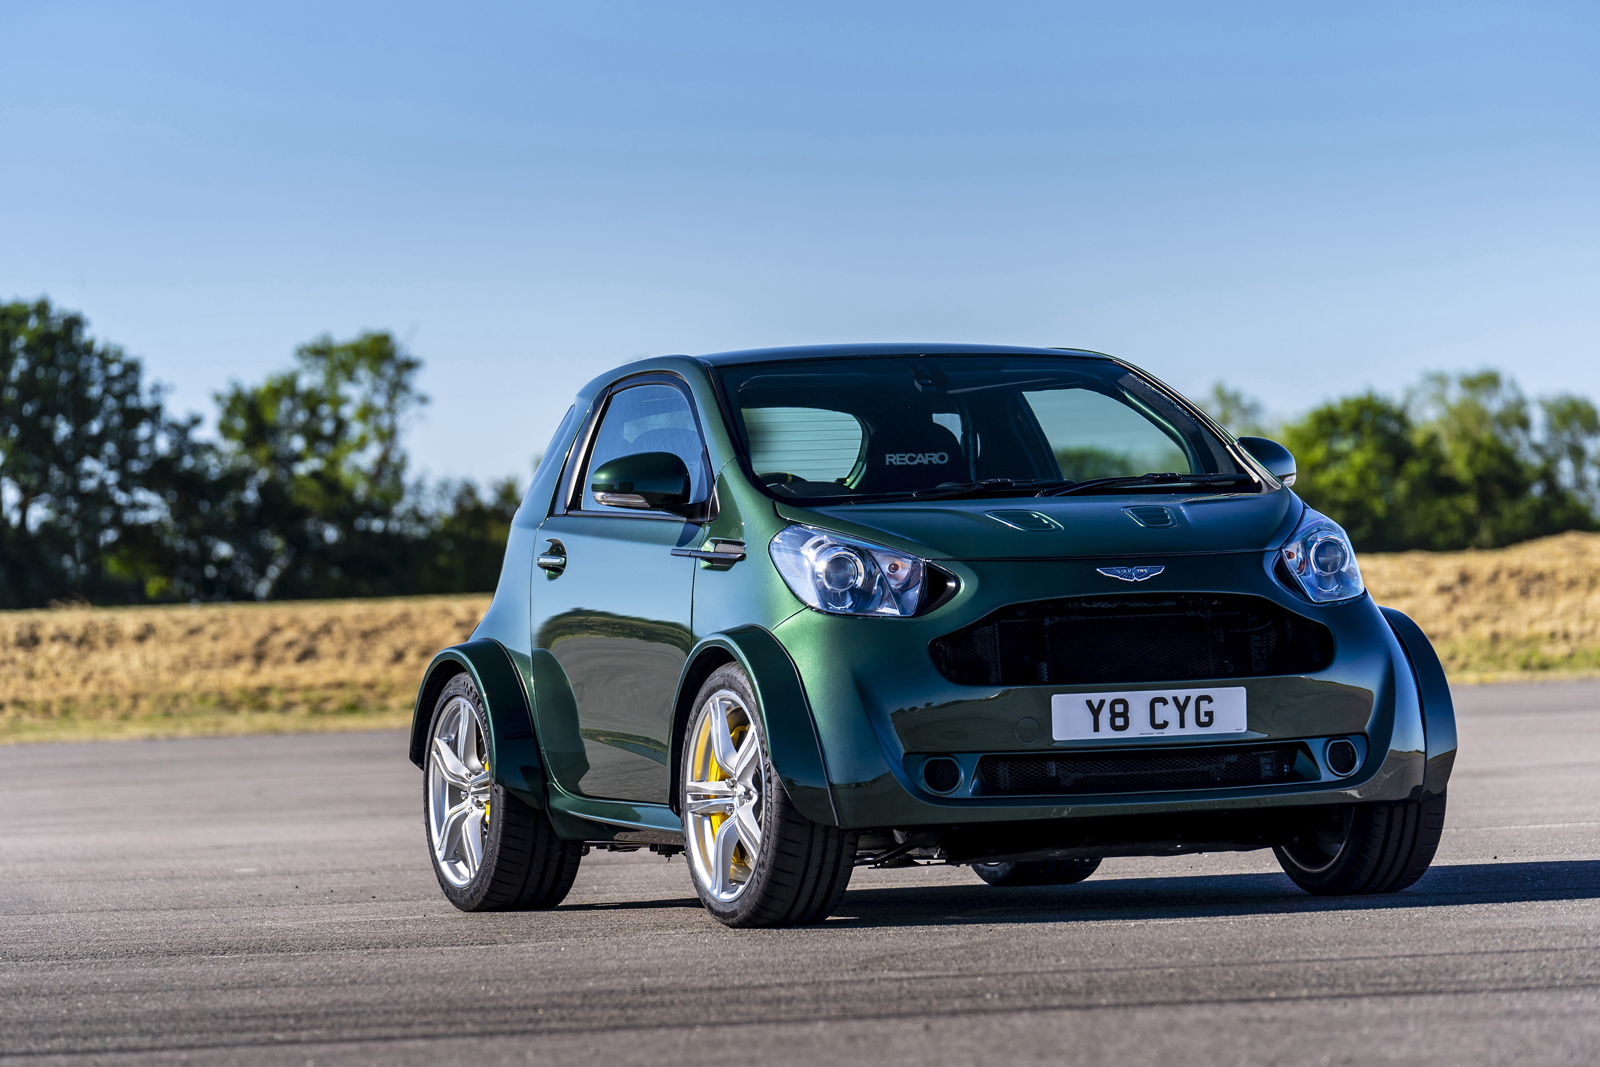 The Aston Martin V8 Cygnet is All that Matters in the World